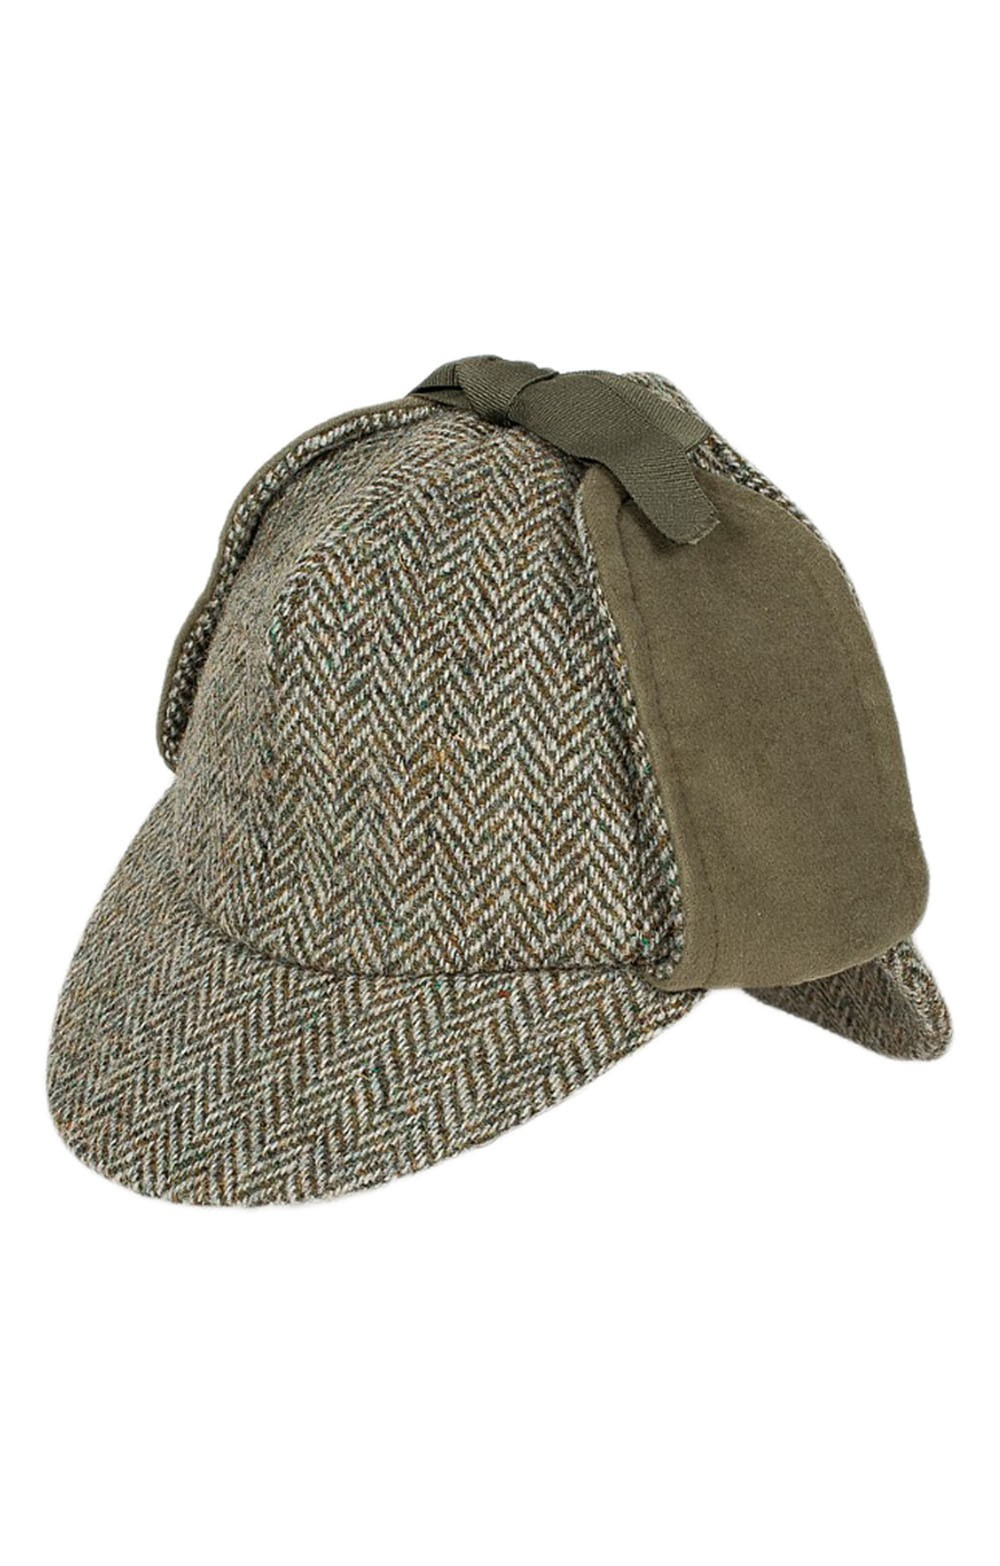 Harris Tweed Deerstalker Hat - House of Bruar 373798867b3